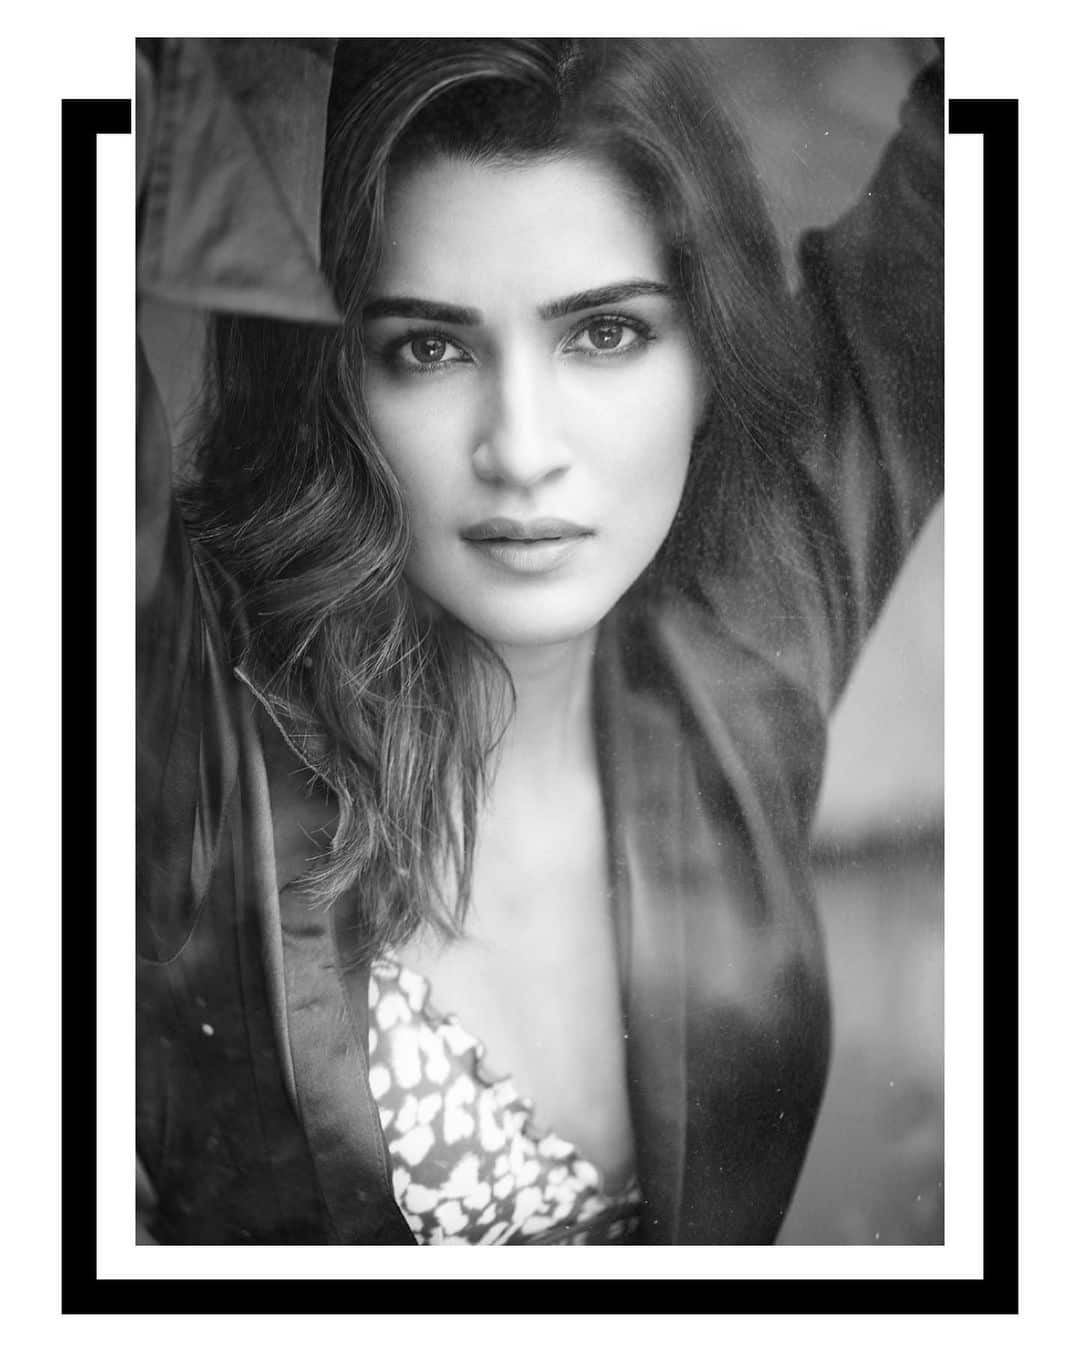 Kriti Sanon leaves fans mesmerised with her simple yet stunning looks